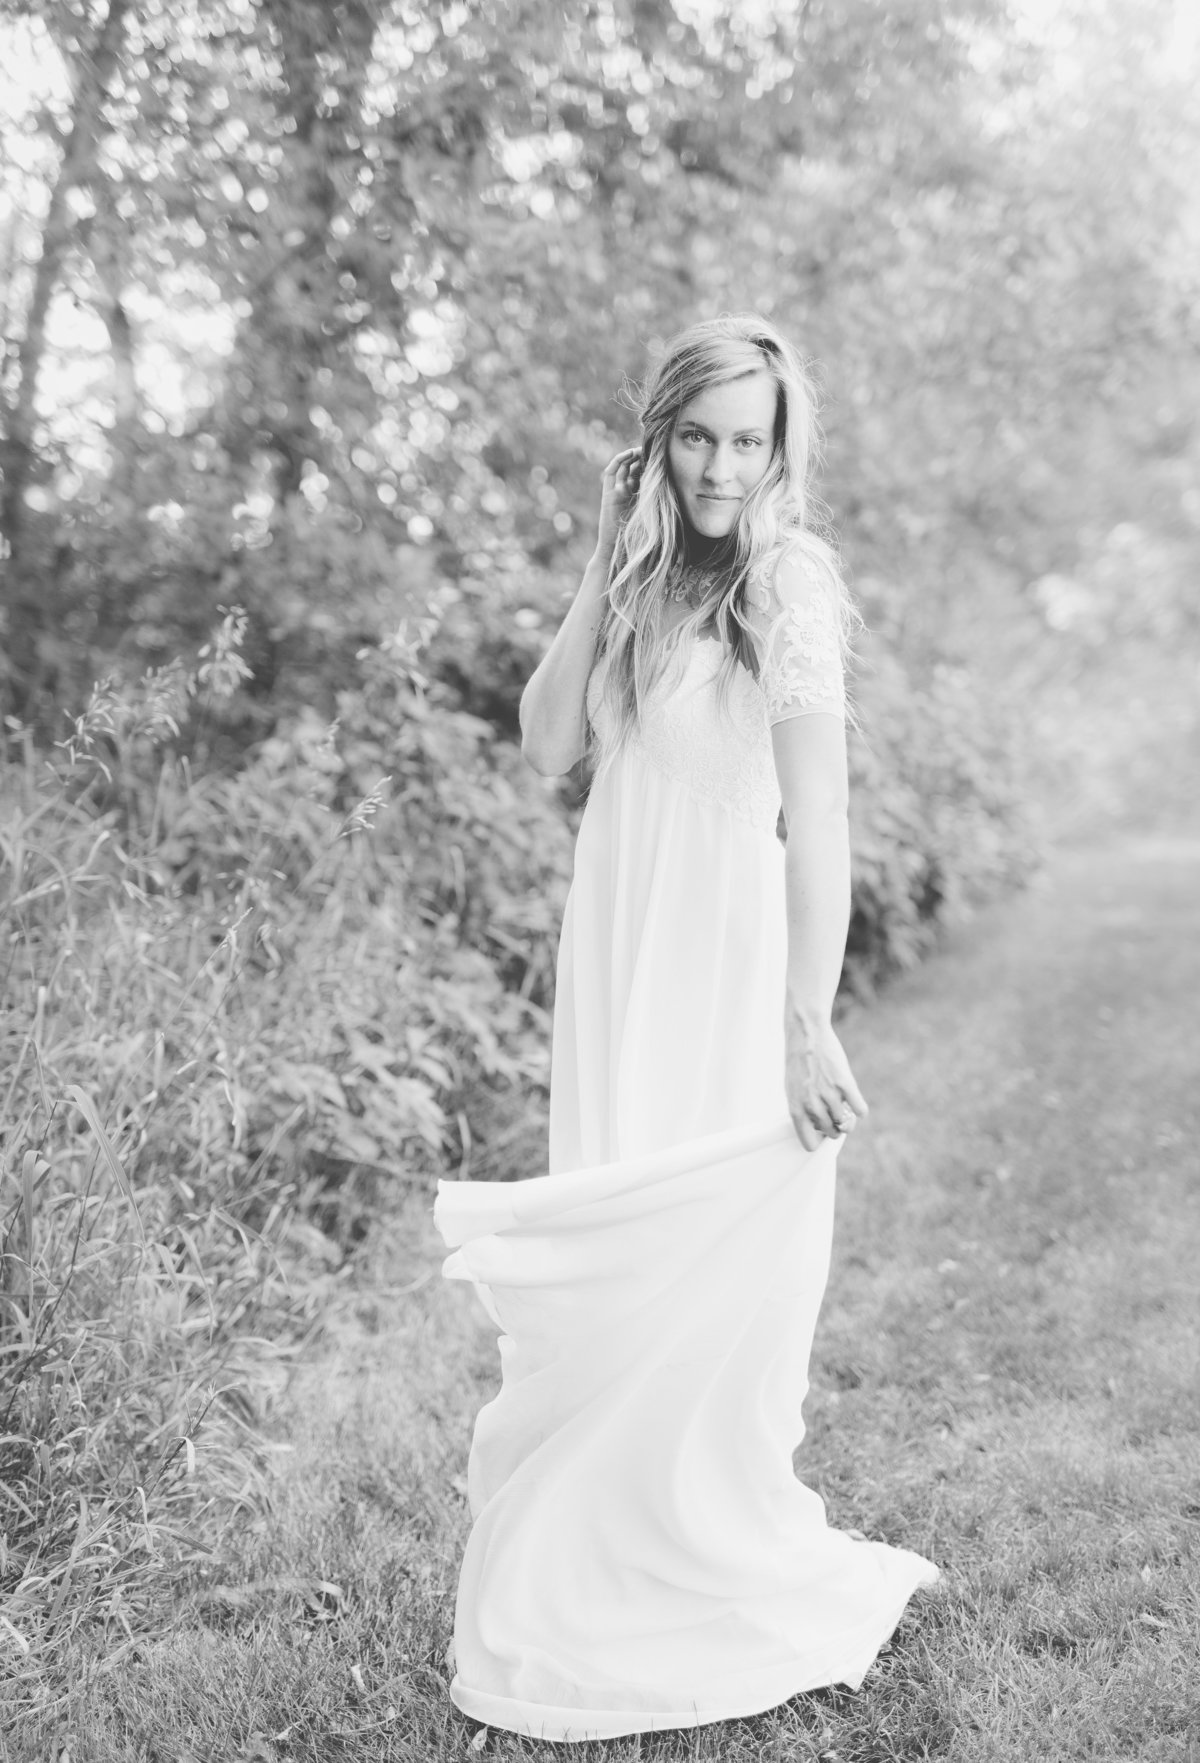 Kailey - Styled Shoot - New Edits-23